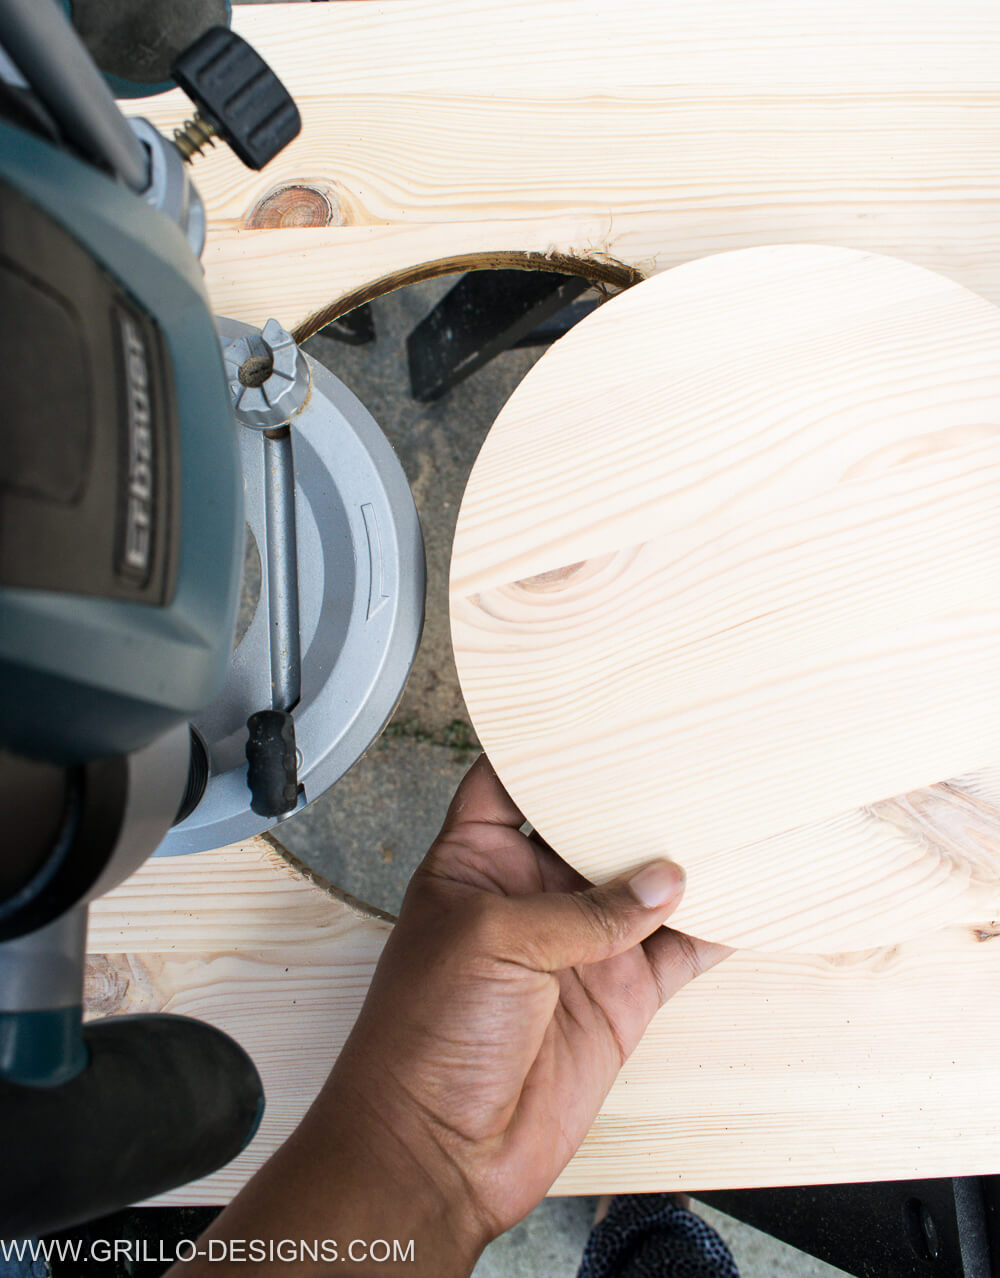 Cut circles from pine wood using a power router